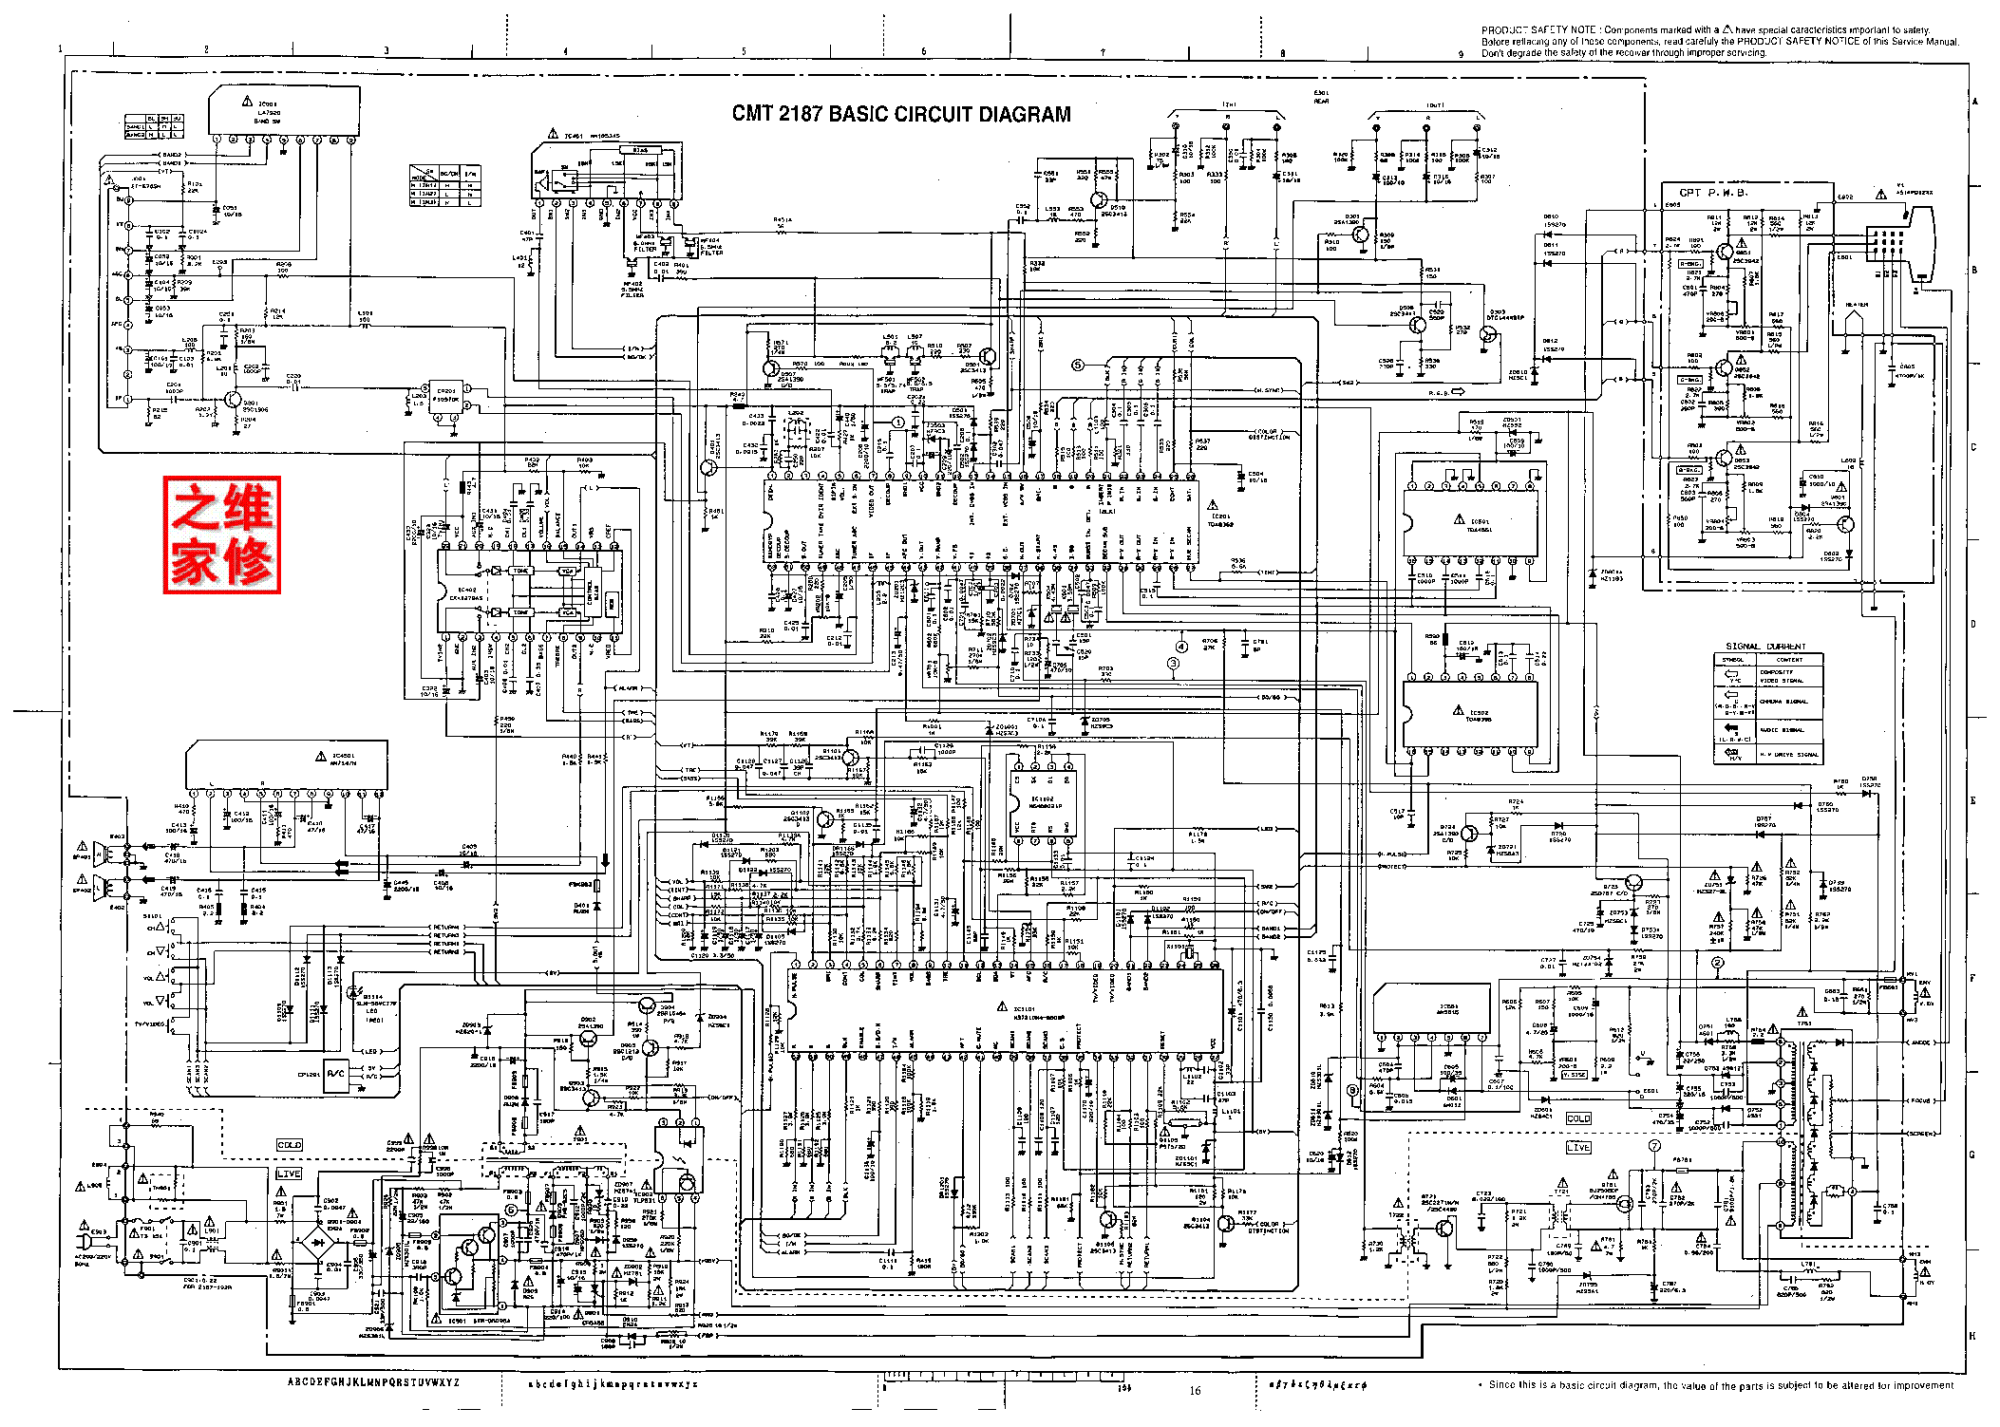 hight resolution of t v circuit diagram free download diagram data schema sanyo tv schematic diagram free download t v circuit